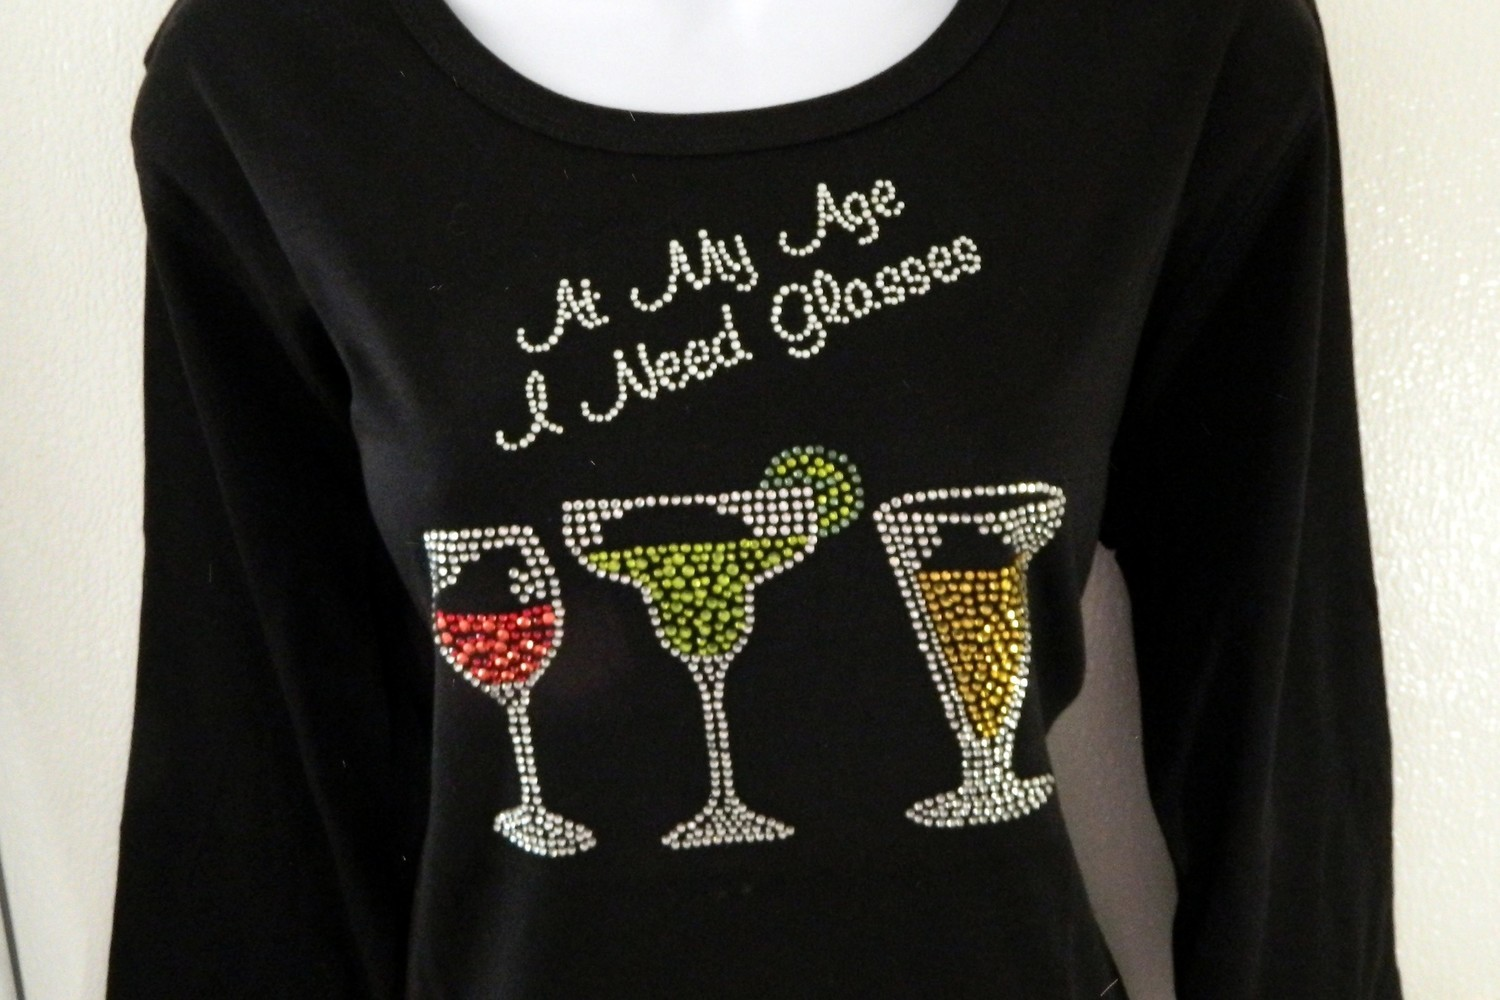 At My Age I Need Glasses  - cocktail  glasses